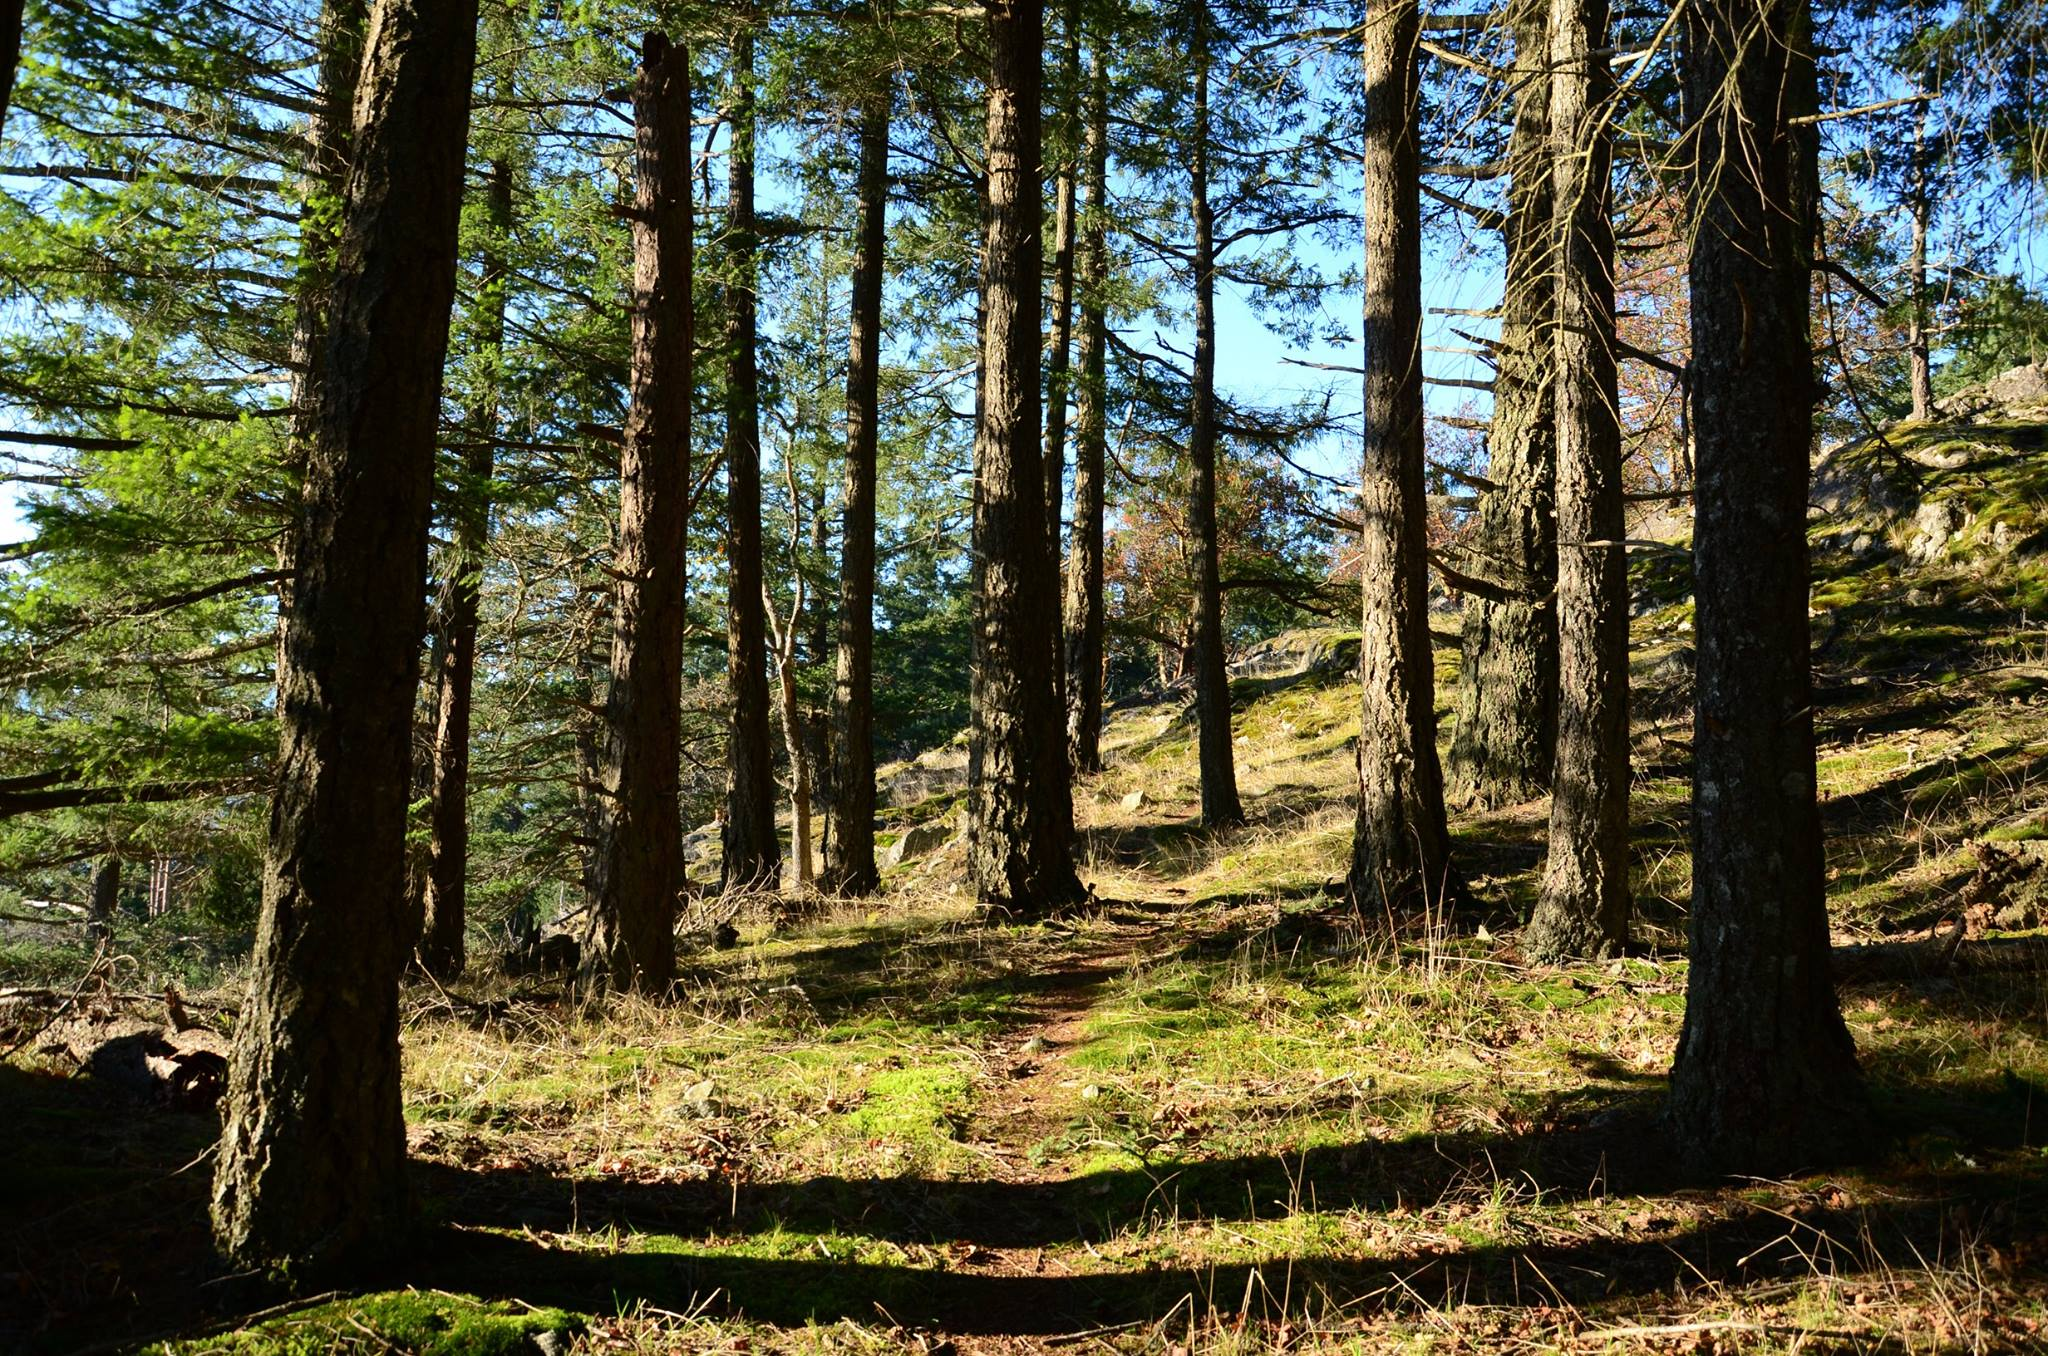 sunny woods with young trees and a trail winding through on a hillside